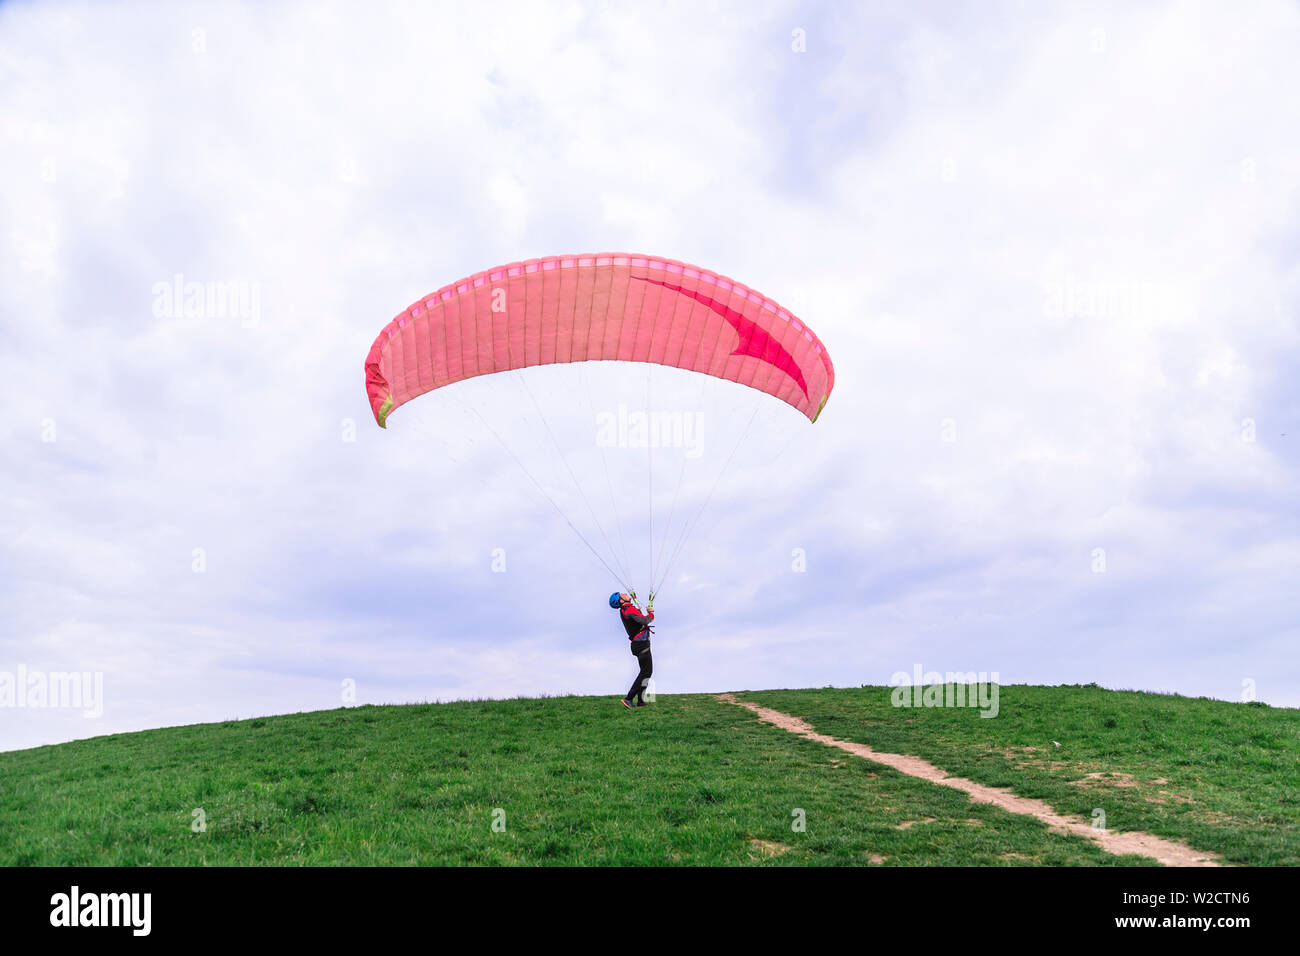 Man landed and tries to drop parachute on ground Stock Photo